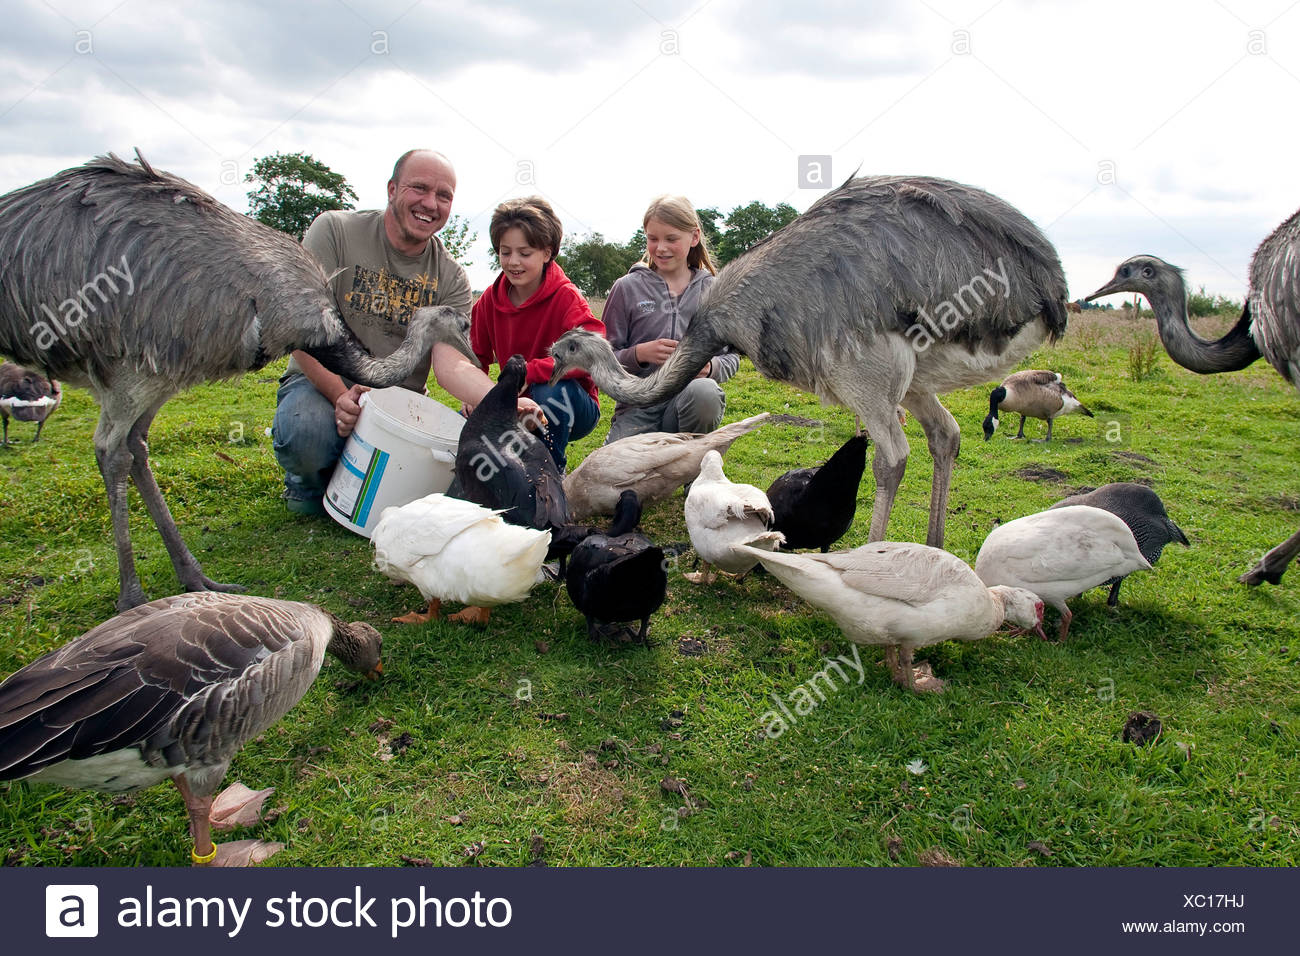 girls with keeper feeding birds in a meadow, Germany - Stock Image